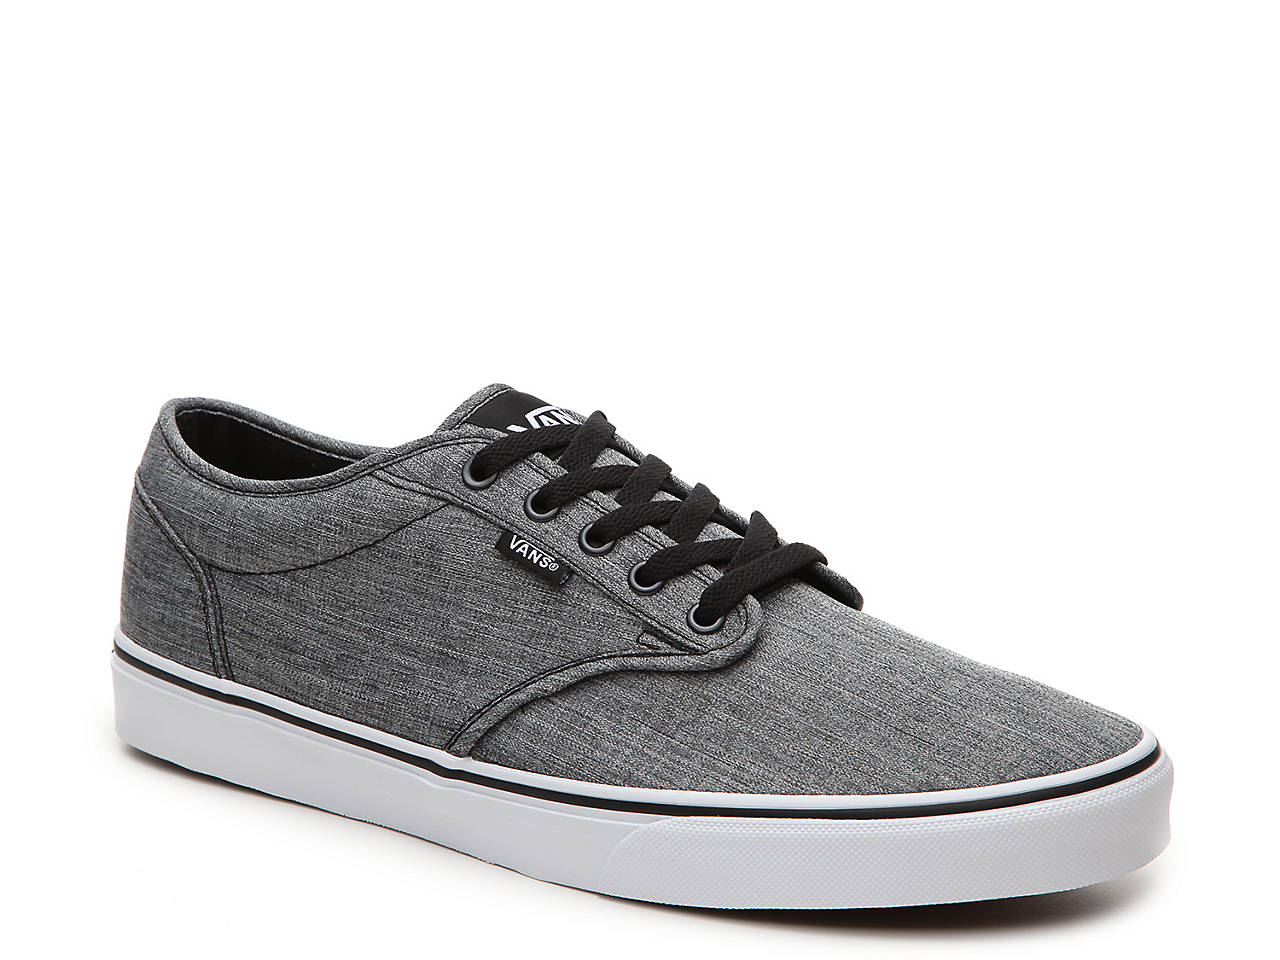 Vans Atwood Sneaker - Men's Men's Shoes | DSW